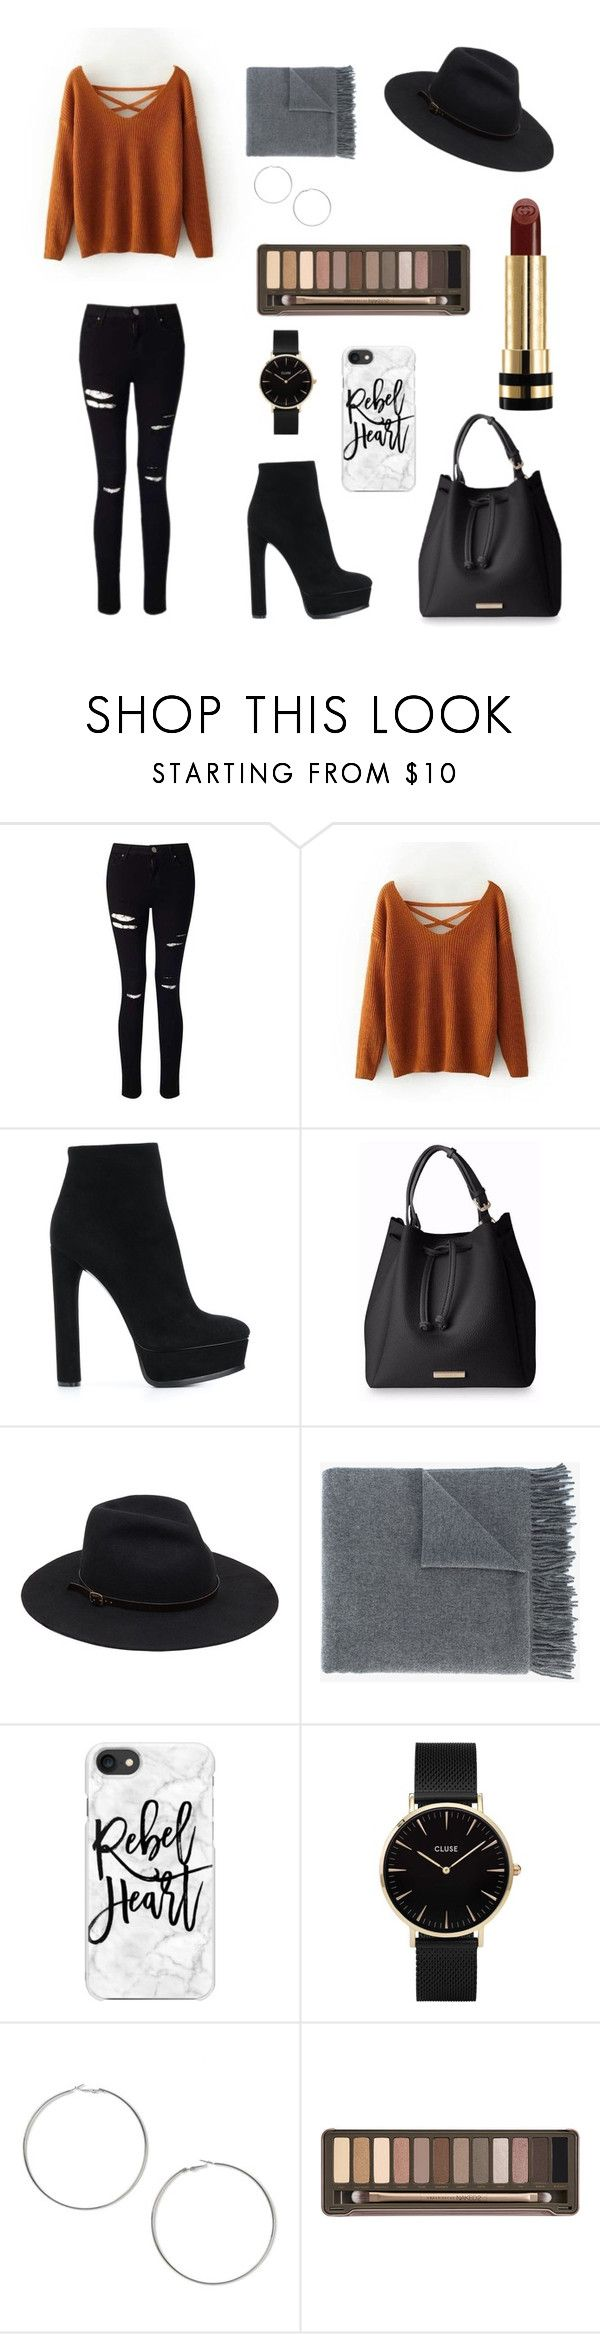 """Fall"" by louncresaux on Polyvore featuring mode, Miss Selfridge, Casadei, Acne Studios, Casetify, CLUSE, Urban Decay et Gucci"